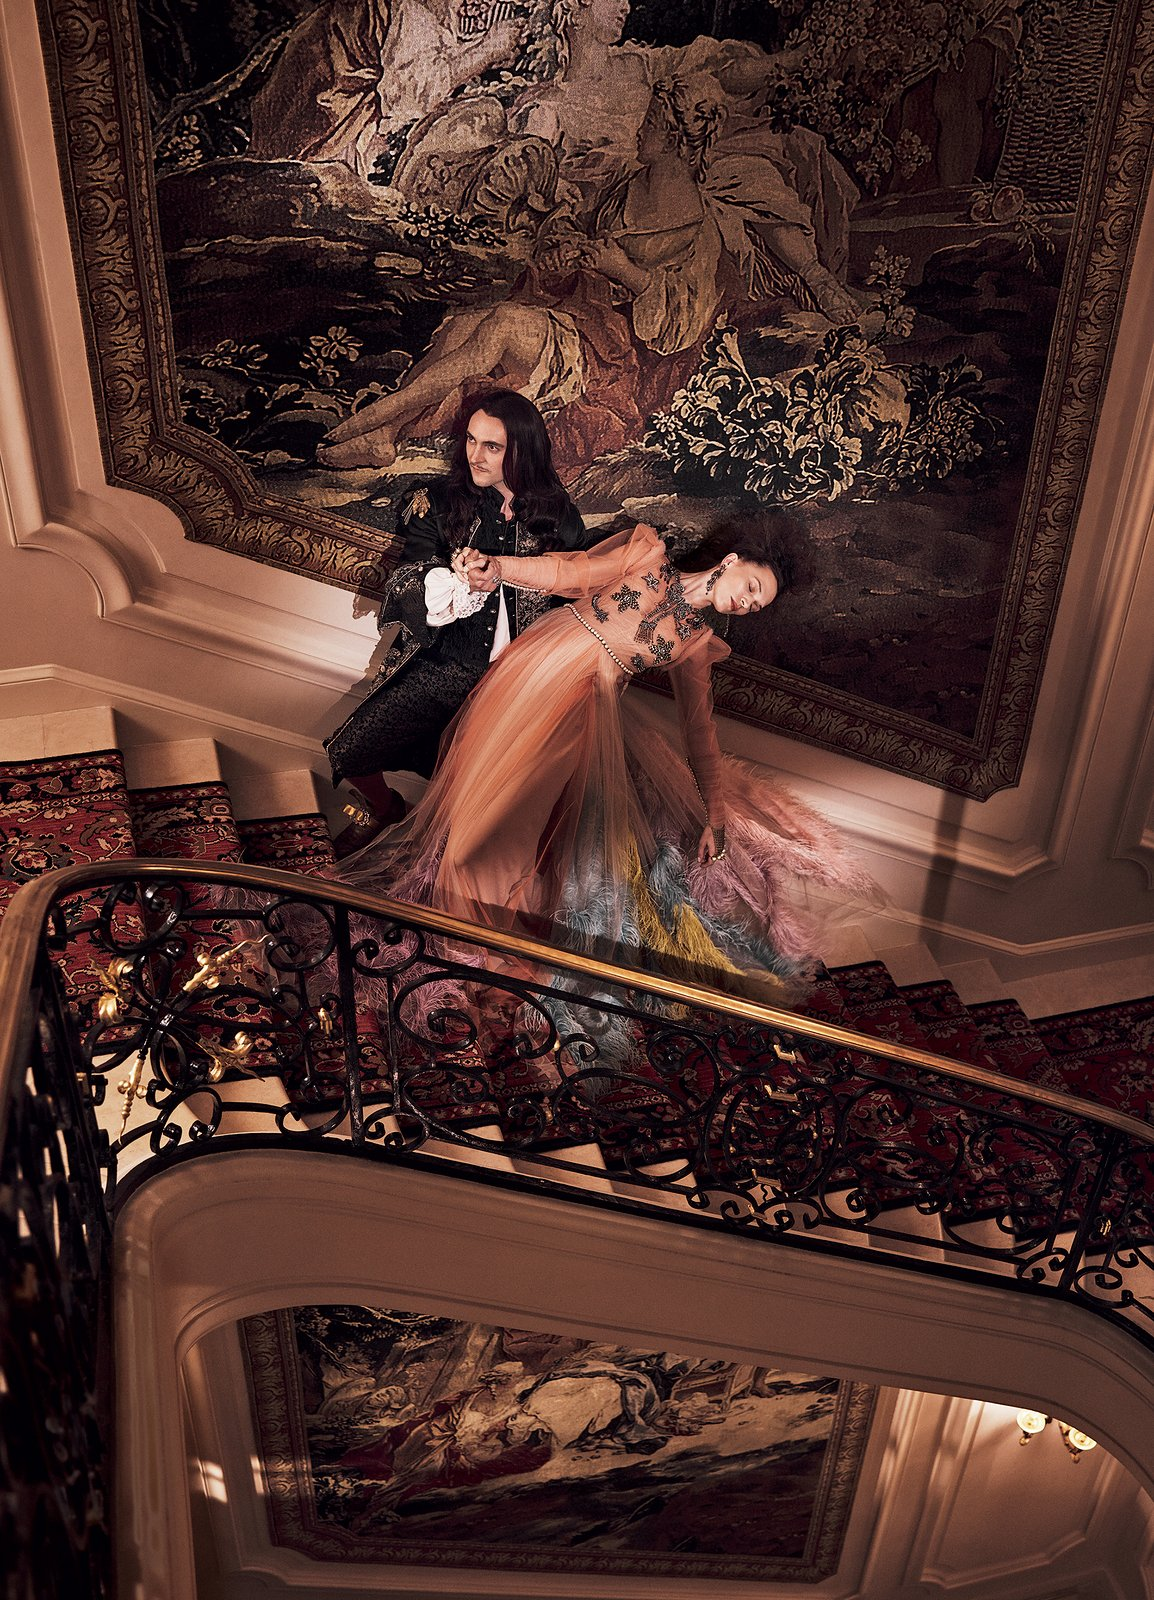 A staircase in the newly renovated Ritz Paris. Source: Vogue